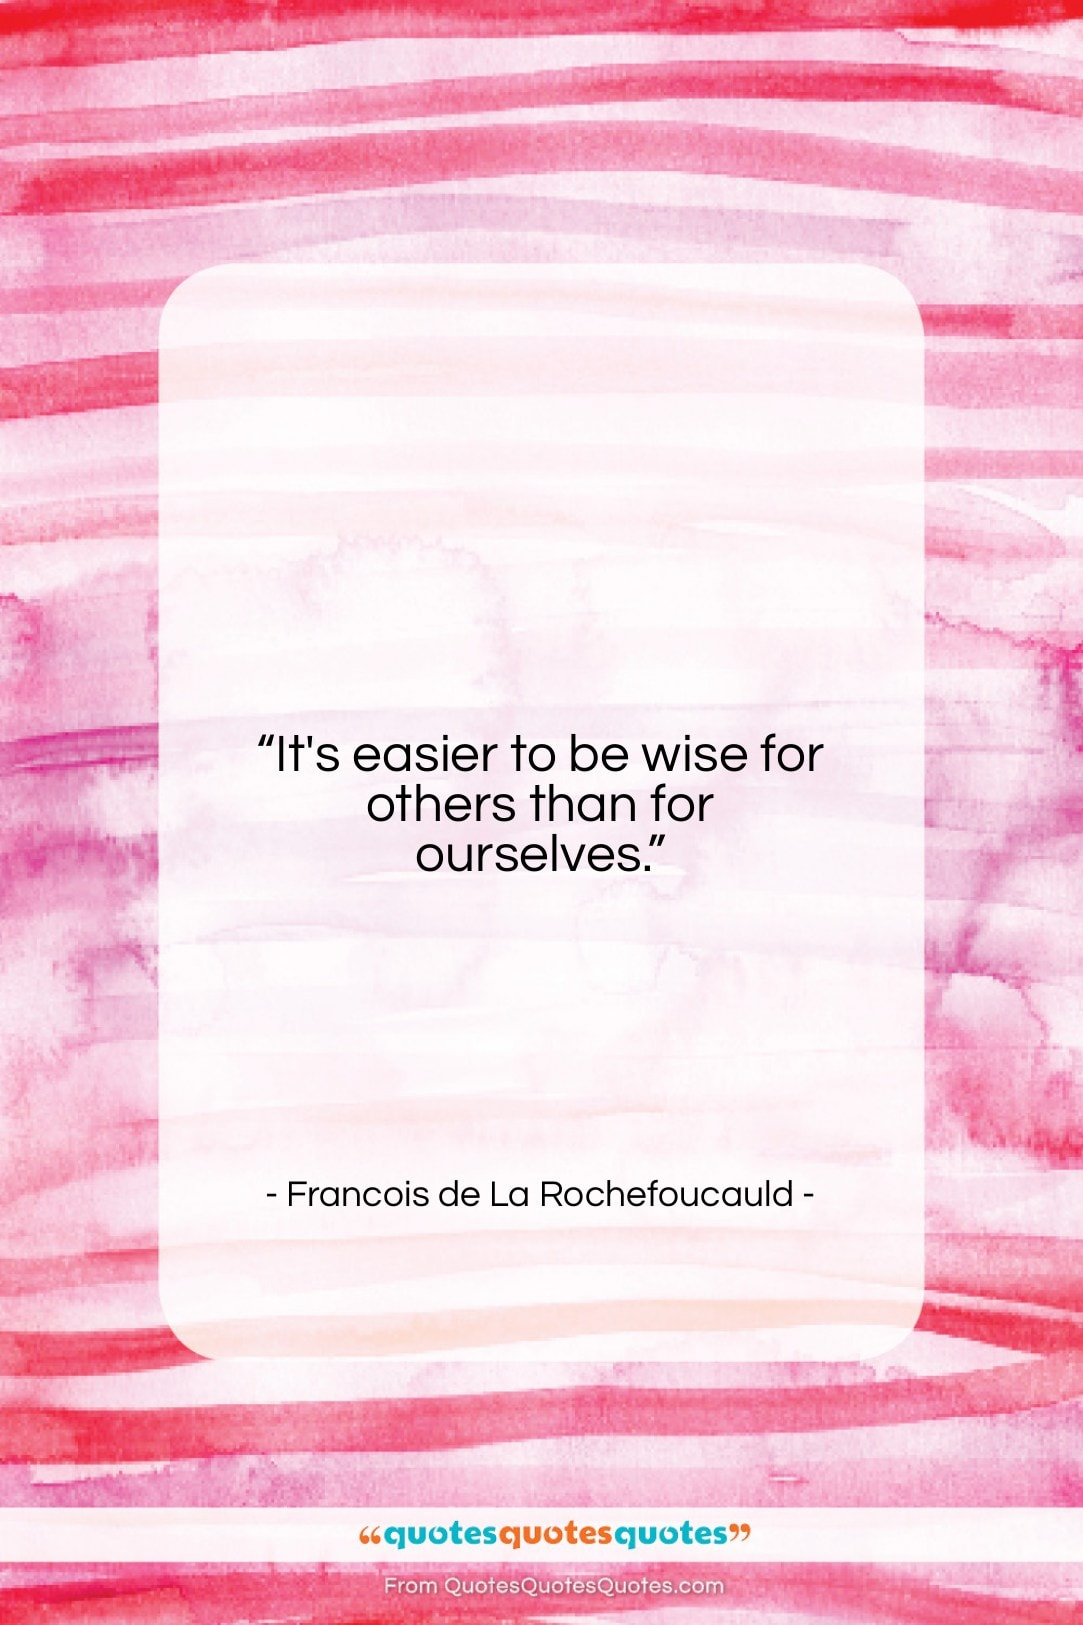 """Francois de La Rochefoucauld quote: """"It's easier to be wise for others…""""- at QuotesQuotesQuotes.com"""